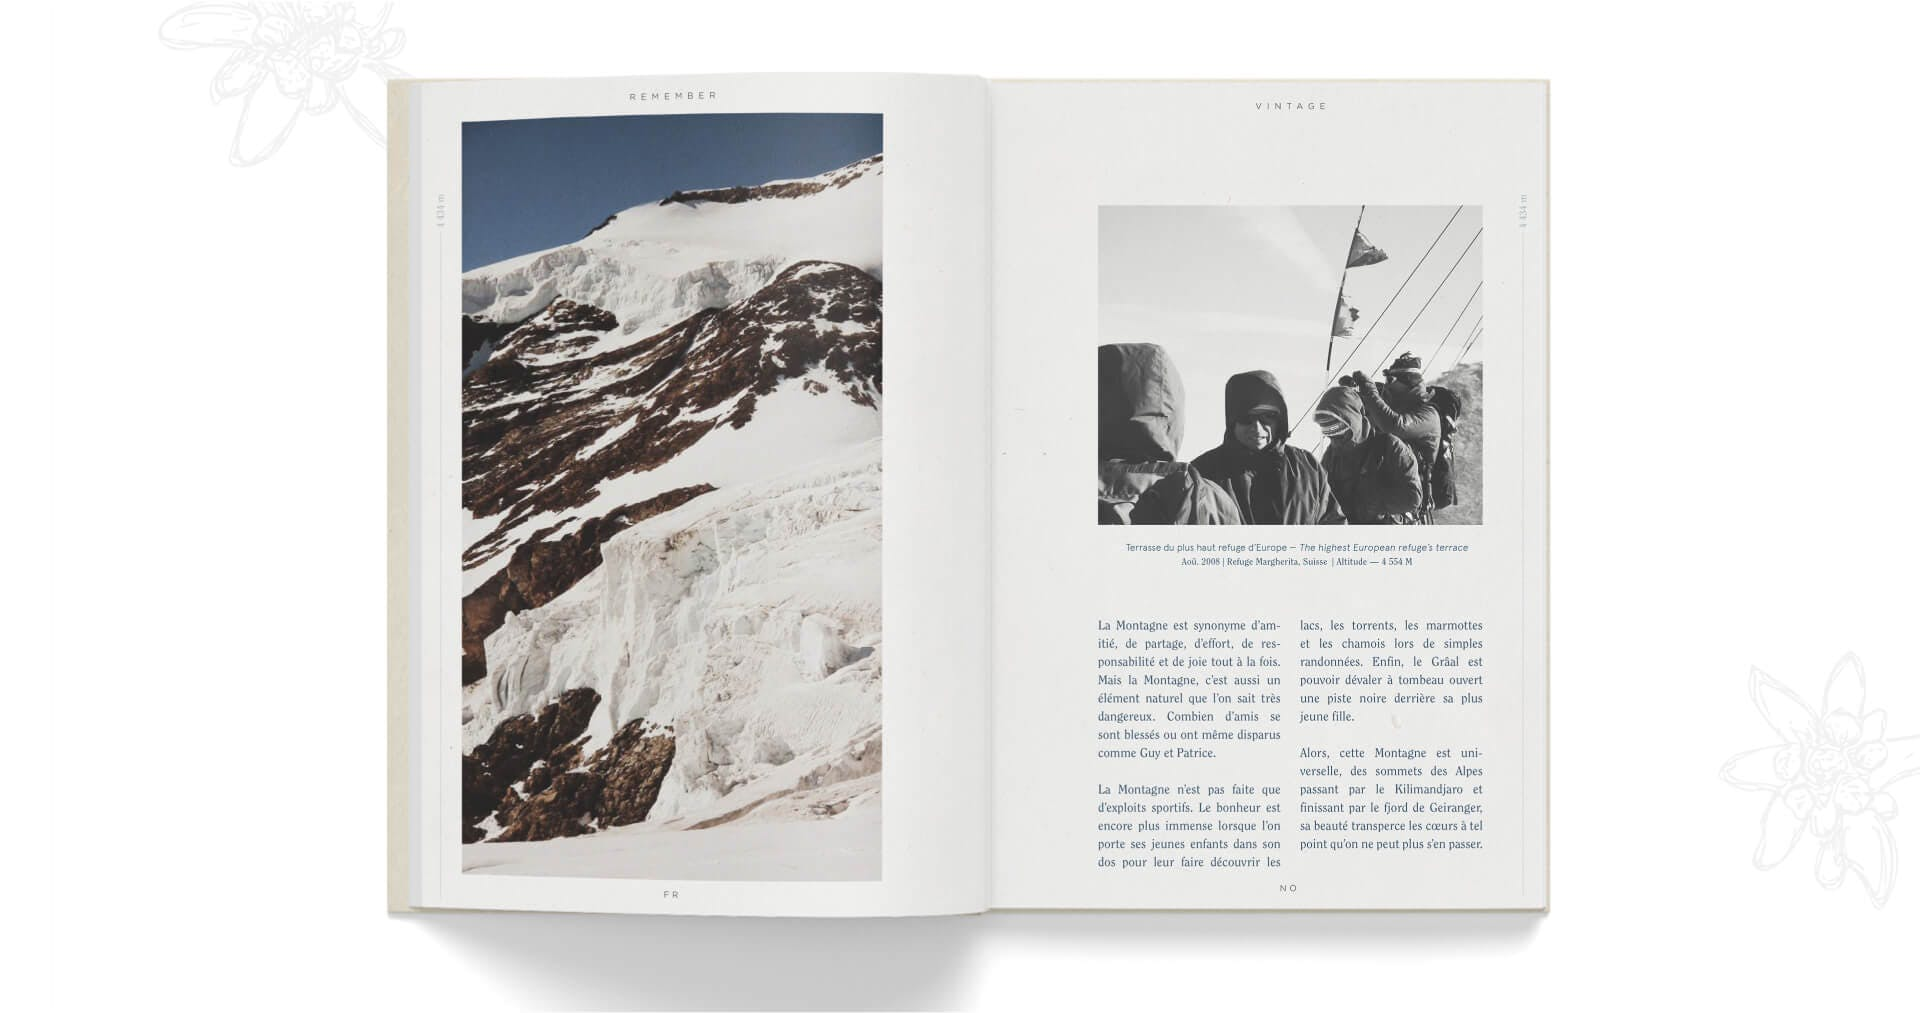 Book open on article about summits and alpinism